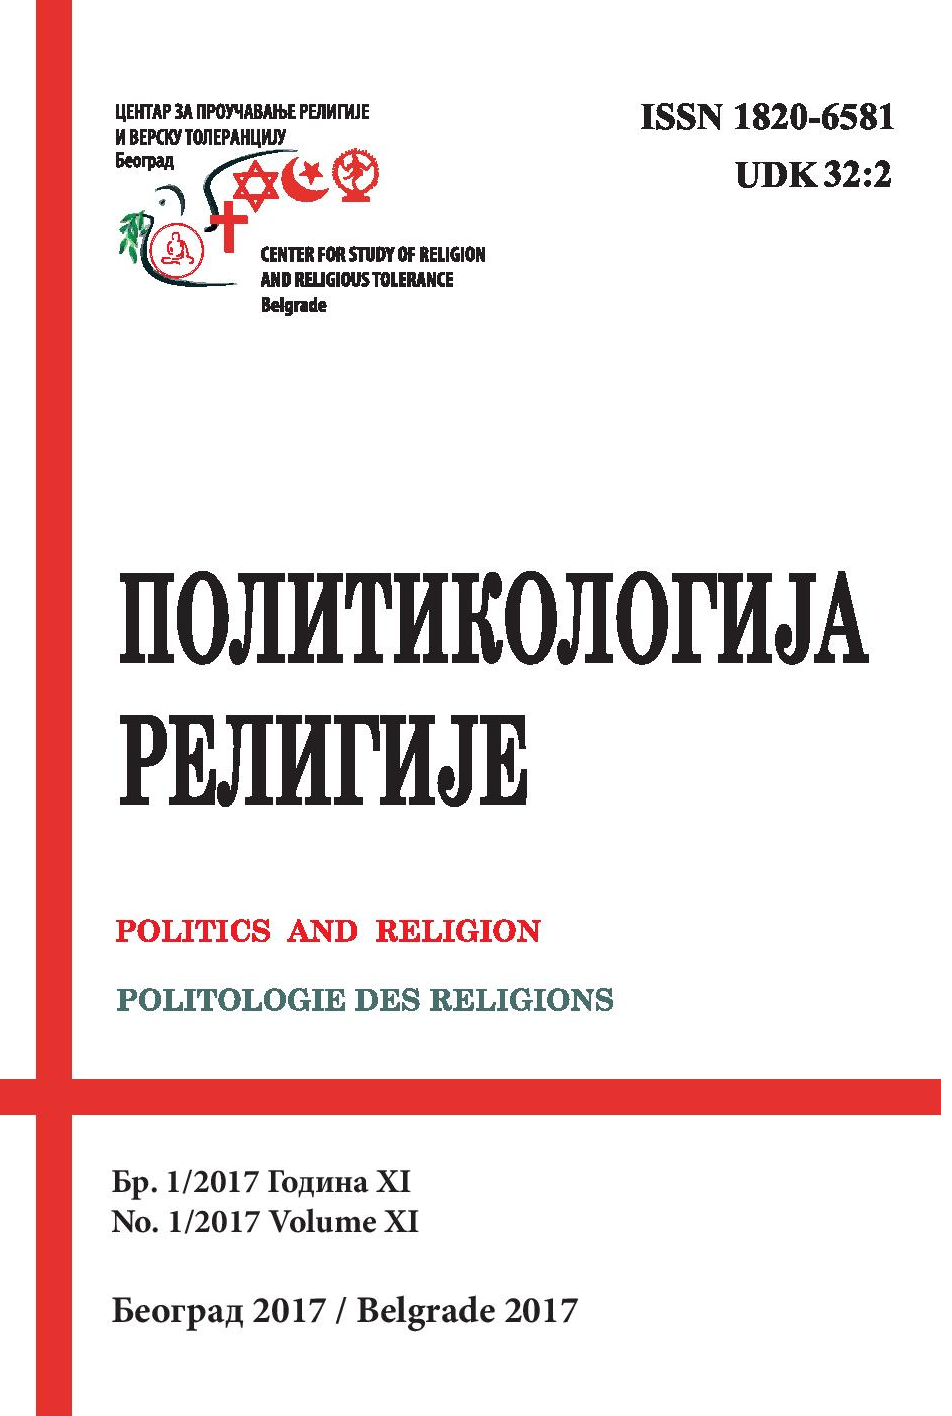 """Politics of Religion and Nationalism. Federalism, Consociationalism and Secession"""